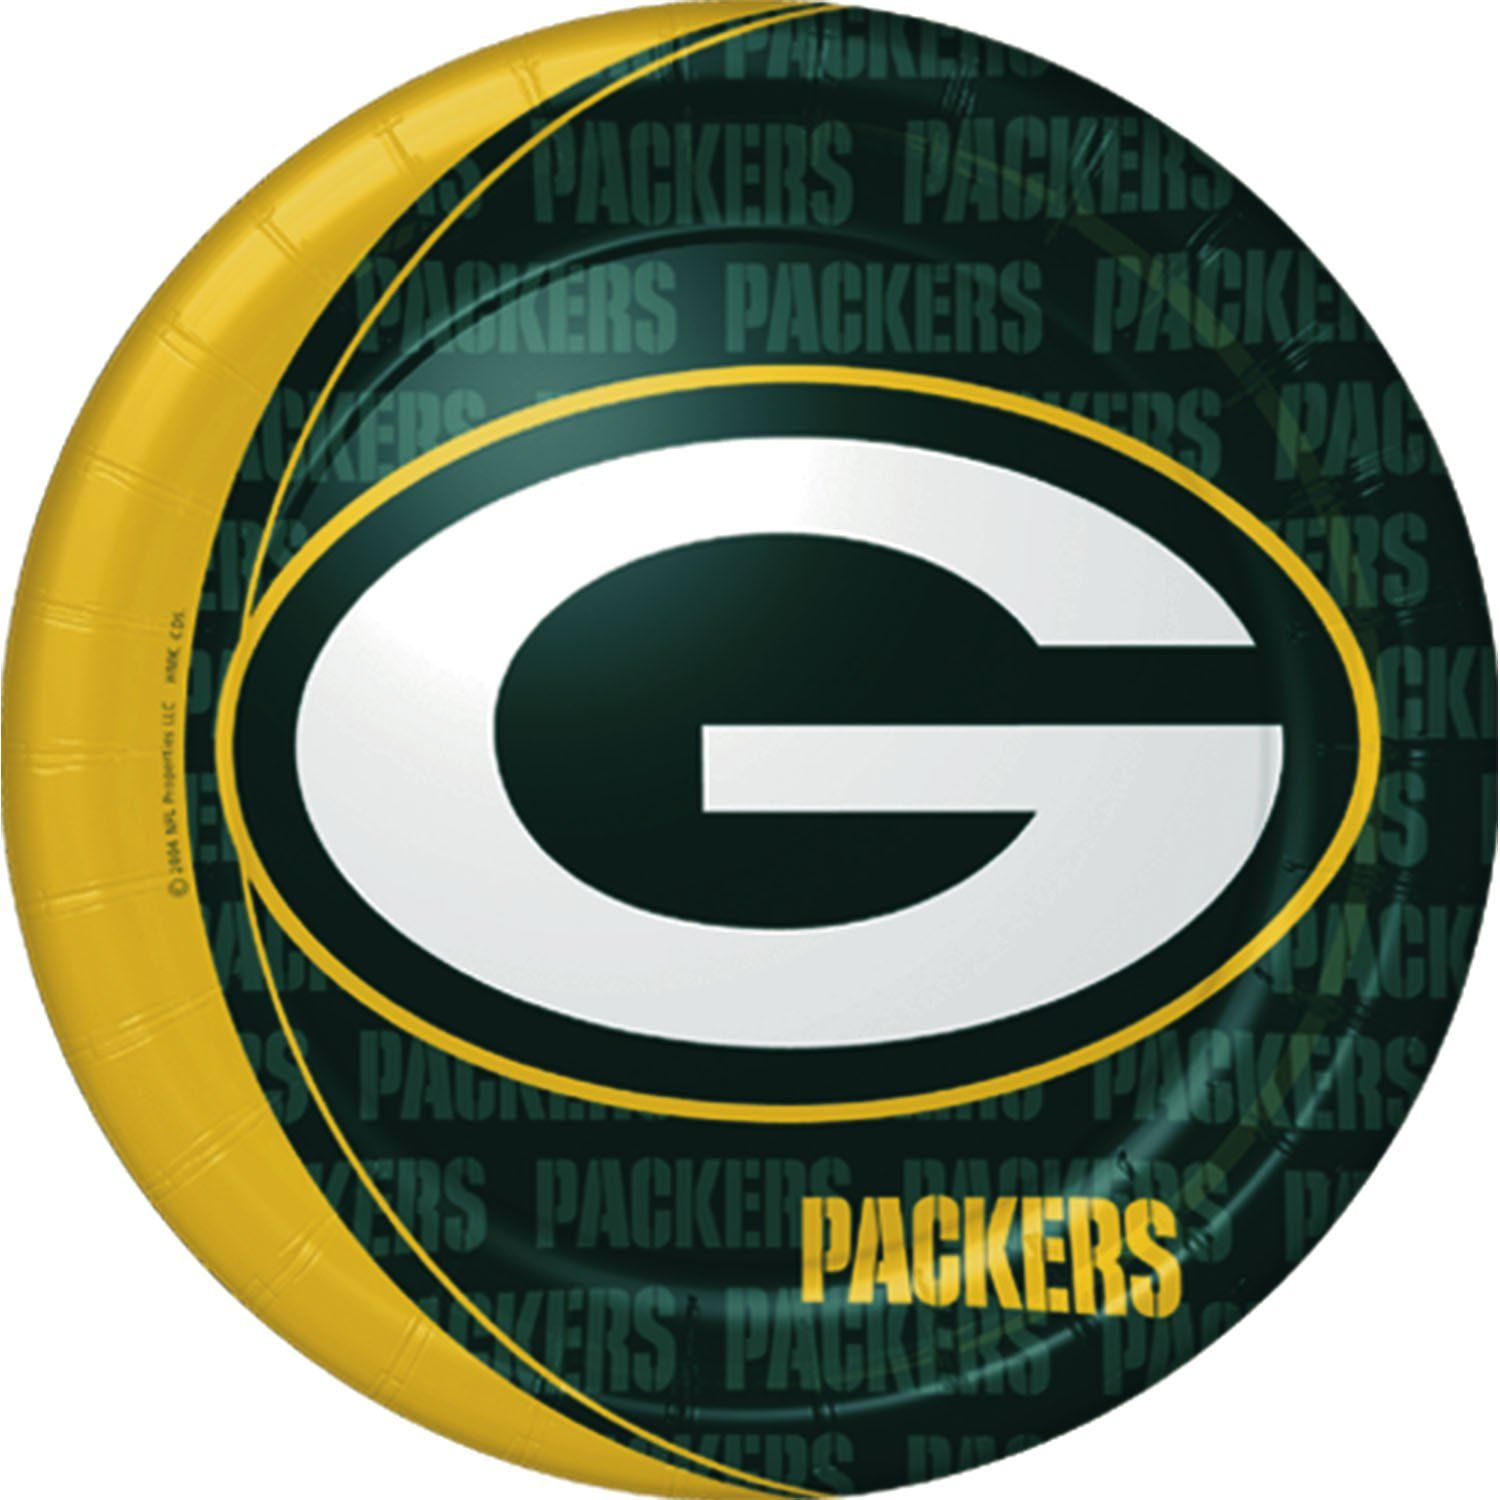 Downloadable Green Bay Packer Logos Google Search Green Bay Packers Logo Green Bay Packers Party Green Bay Packers